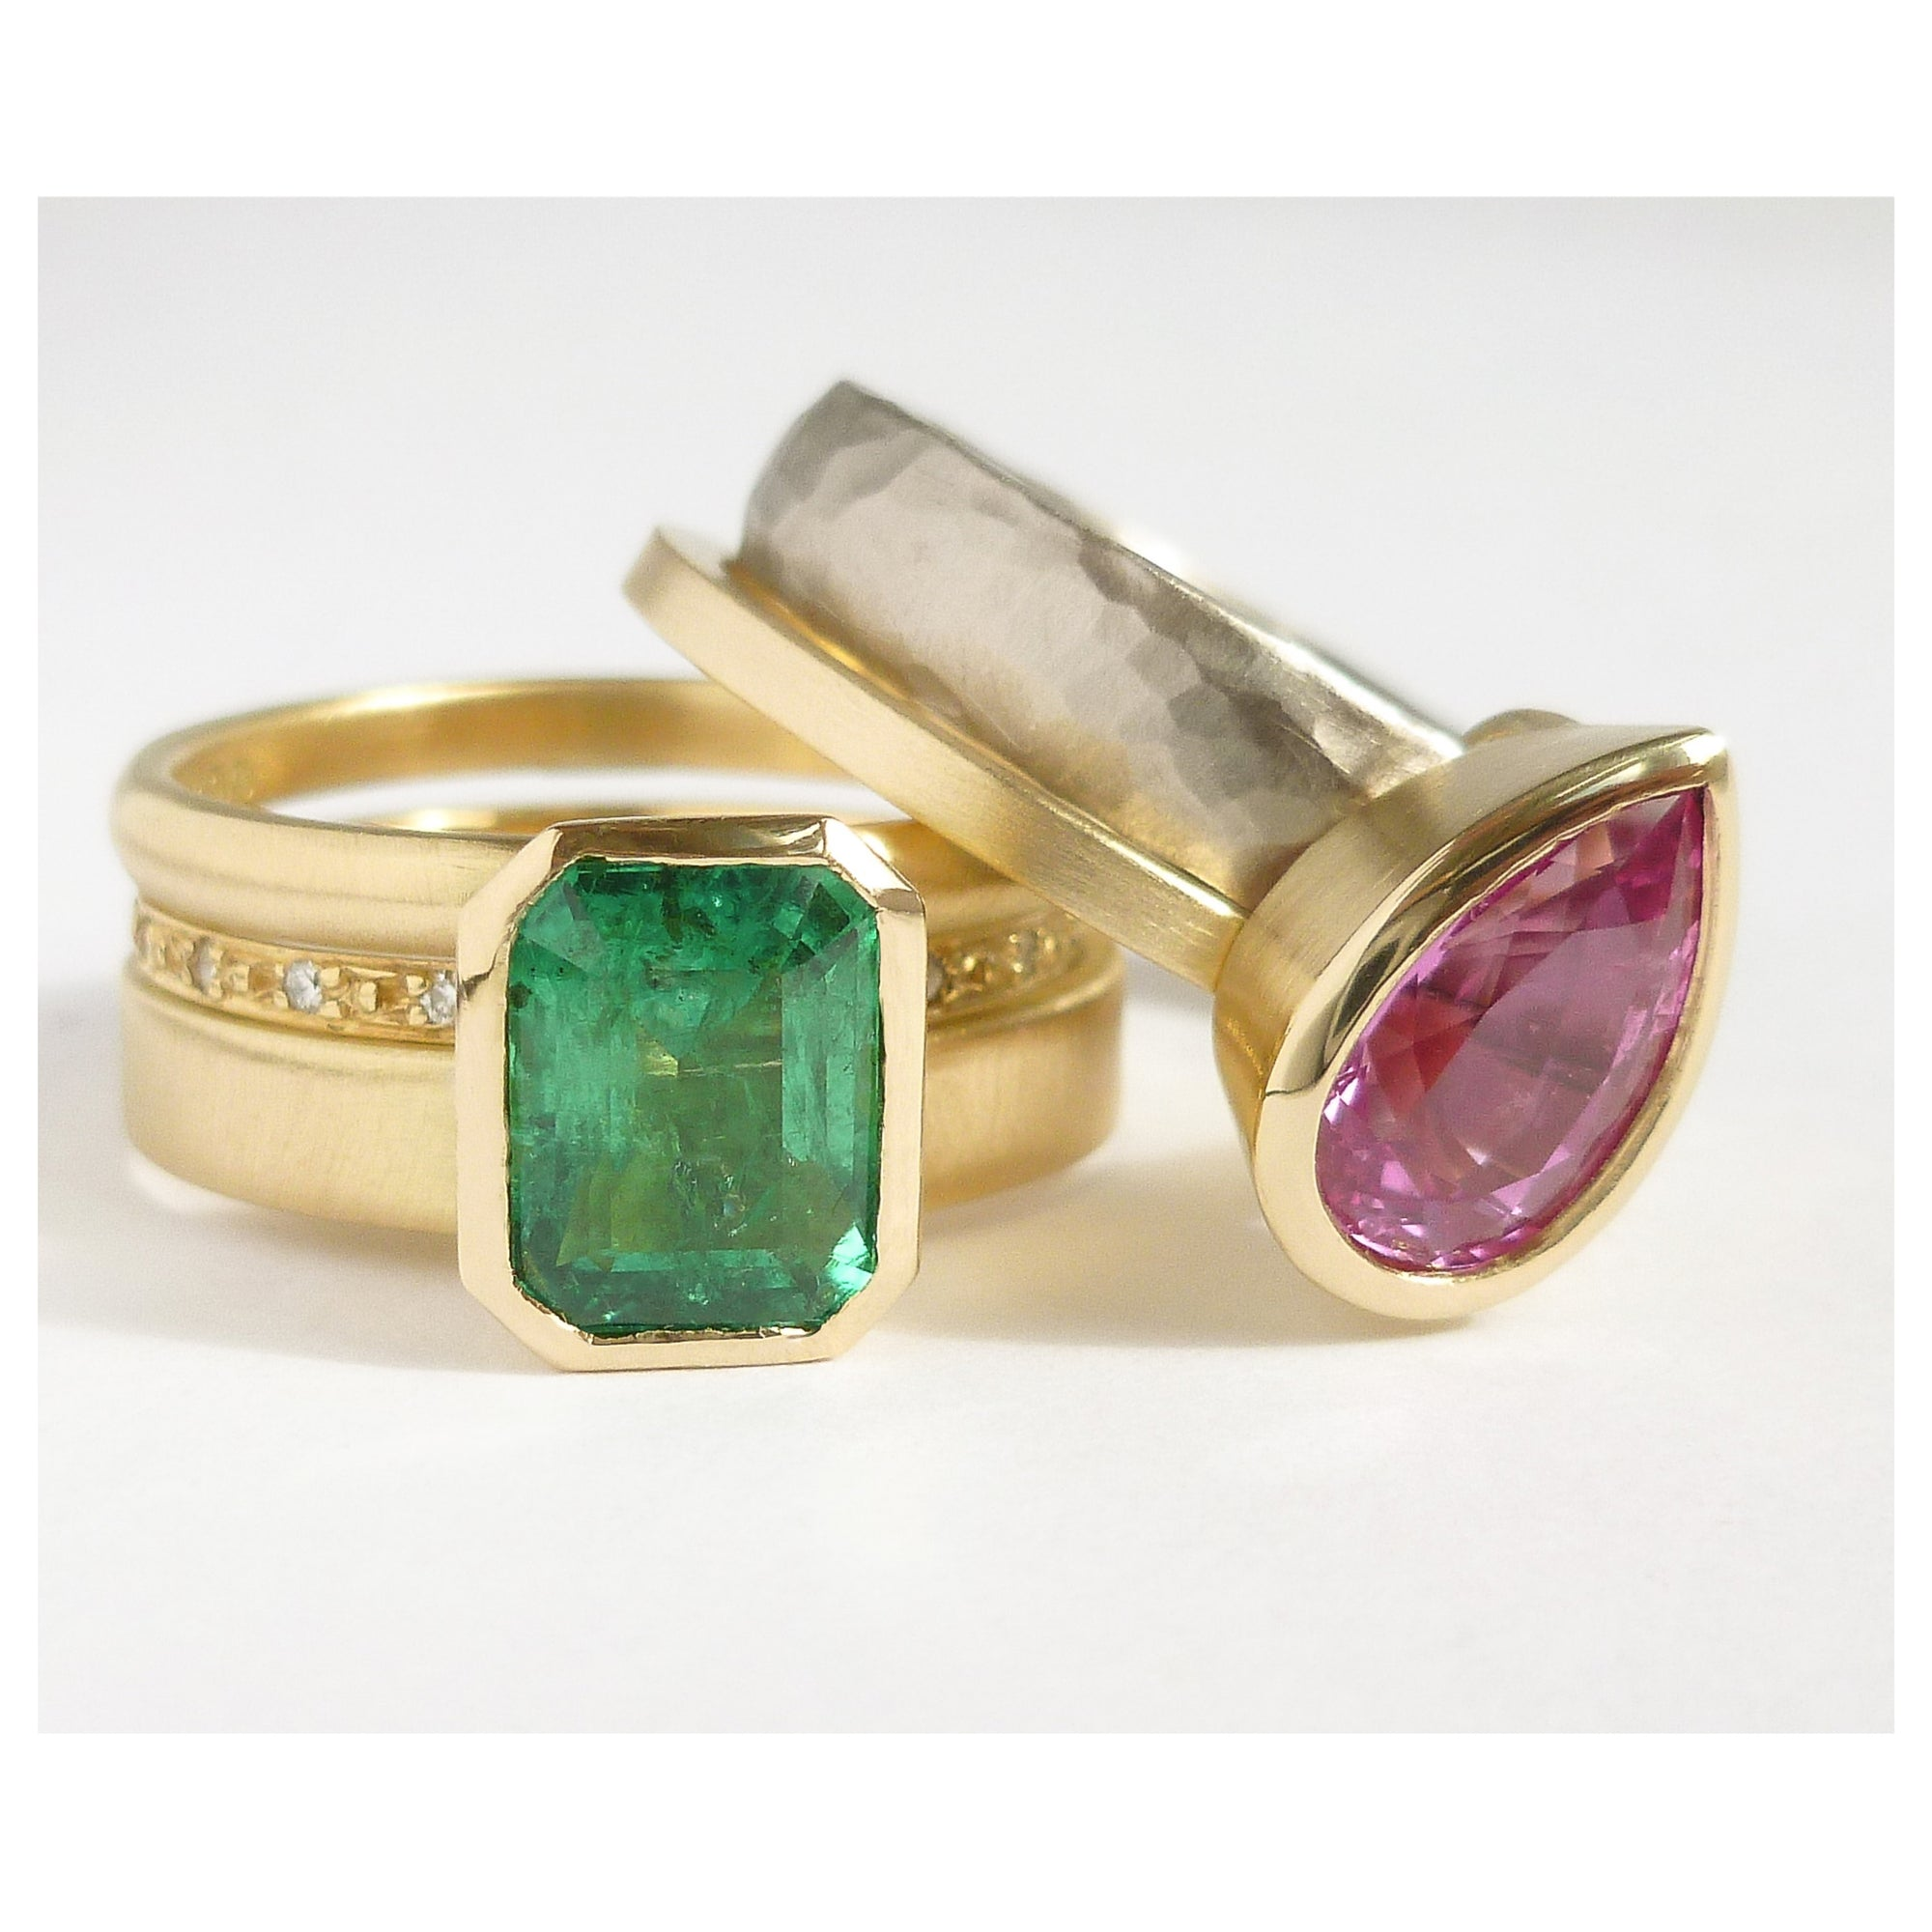 Visit Sue at Goldsmiths' Fair next week!